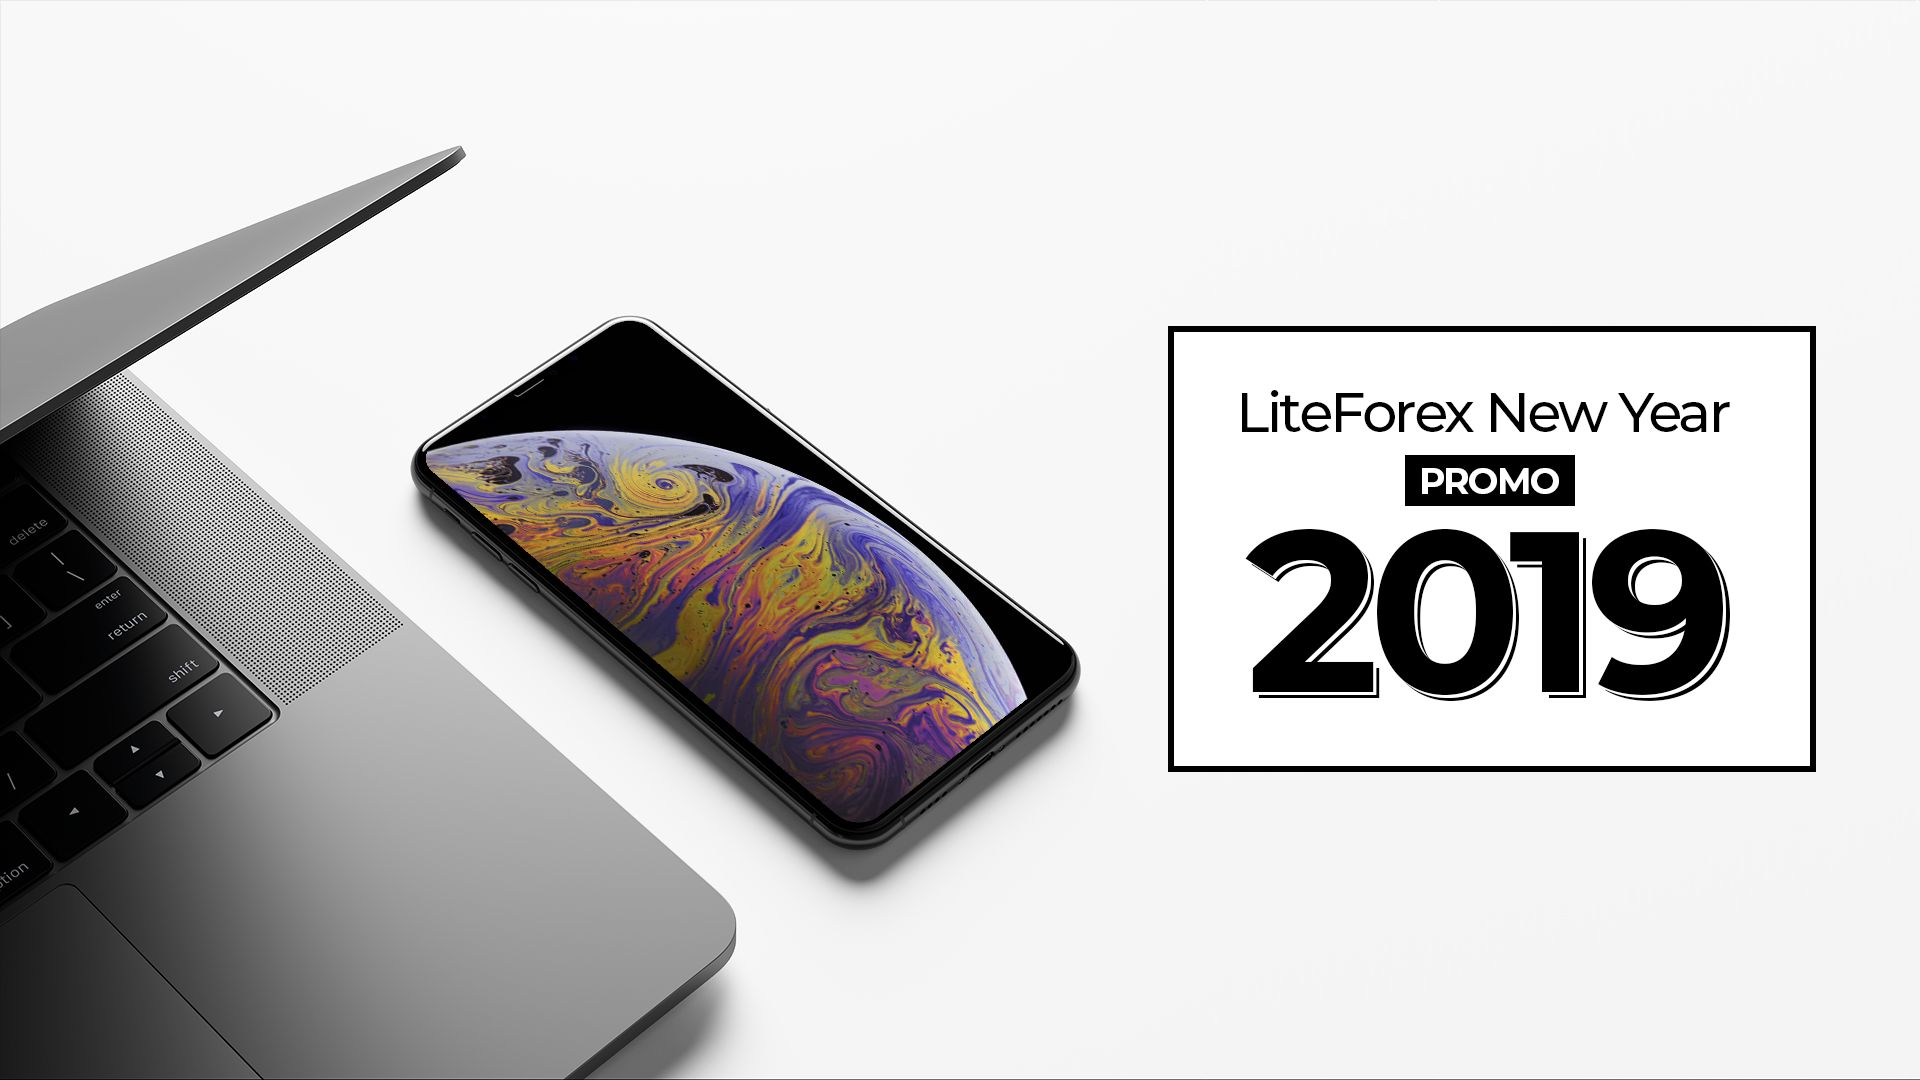 https://ru.liteforex.com/uploads/news/news/liteforex-new-year-promo-2019.jpg